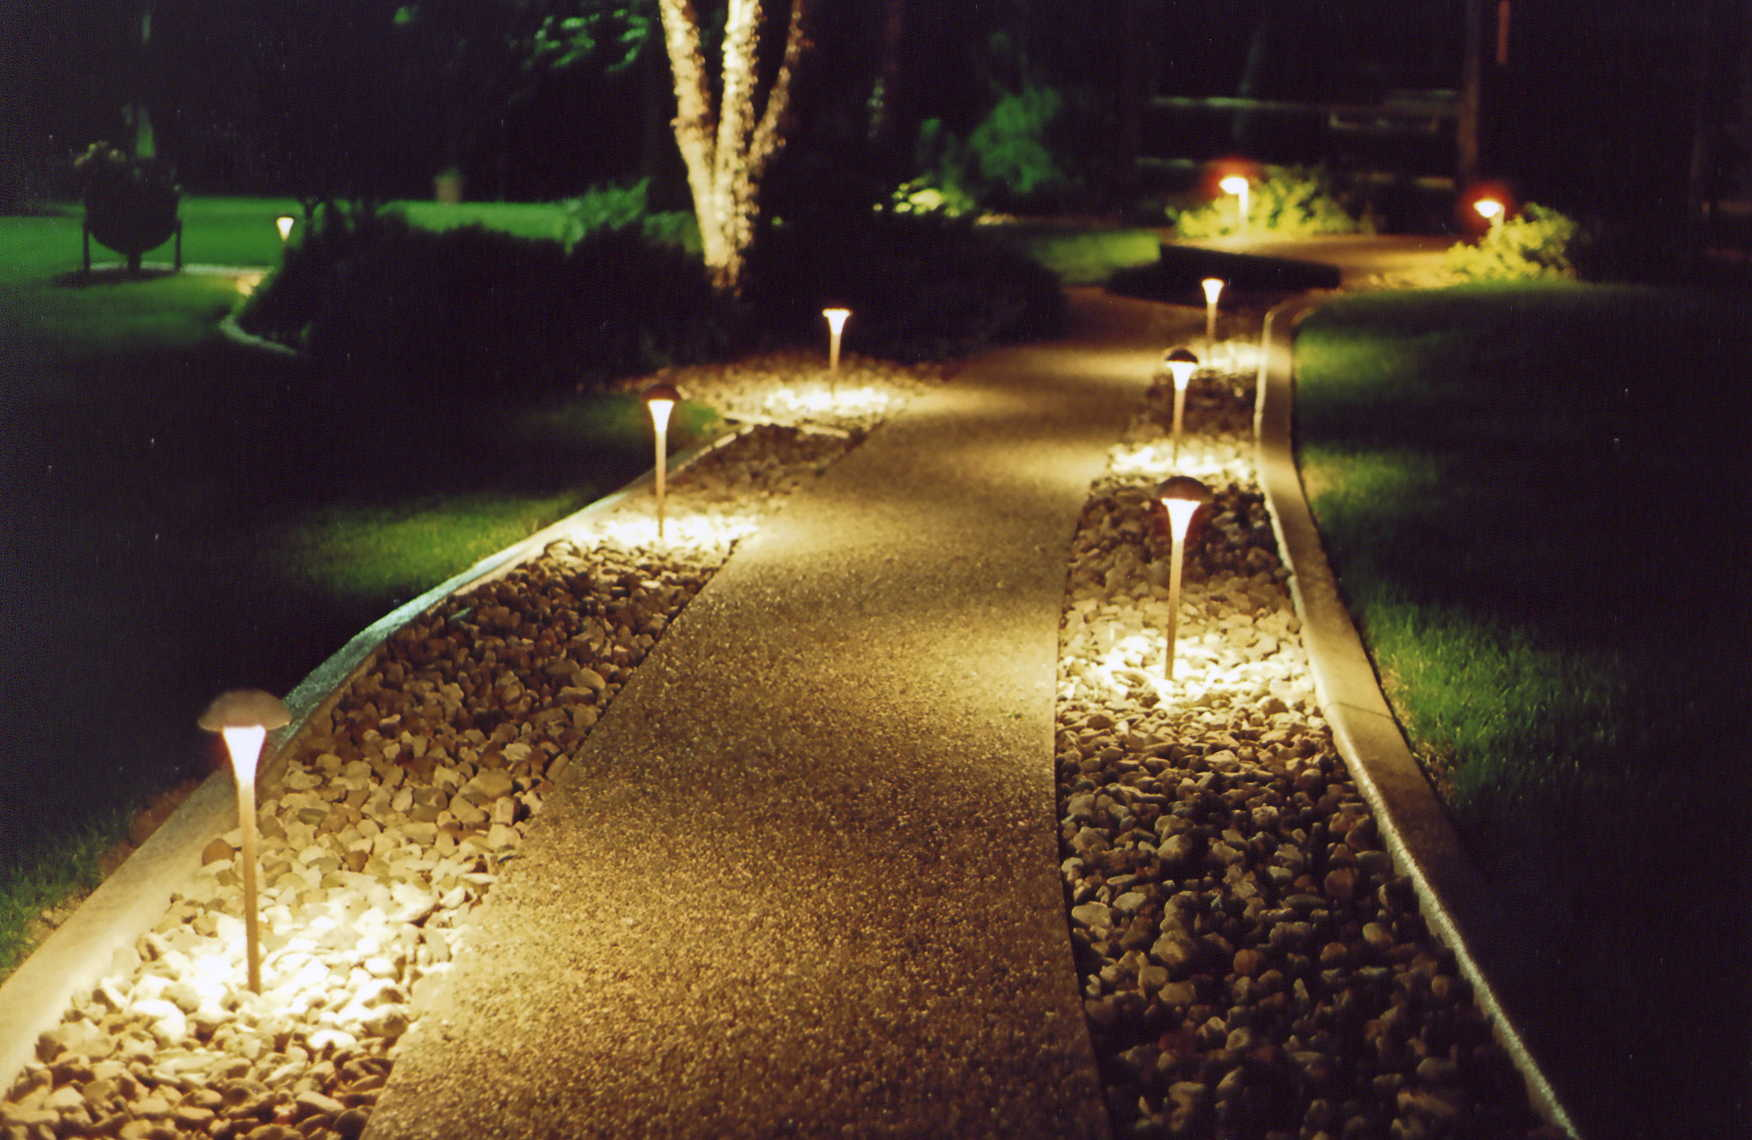 Path and Garden lighting-Spring Hill FL Outdoor Lighting Installers-We Offer Outdoor Lighting Services, Landscape Lighting, Low Voltage Lighting, Outdoor LED landscape Lighting, Holiday Lighting, Christmas Lighting, Tree Lighting, Canopy Lighting, Residential outdoor Lighting, Commercial outdoor Lighting, Safety Lighting, Path and Garden Lighting, Mini lights and flood lights, Landscape Lighting installation, Outdoor spot lights, Outdoor LED garden Lighting, Dock Lighting, Accent lights, Deck and patio lights, Security lights, Underwater Lighting, Tree upLighting, Outdoor Lighting repair services, and more.